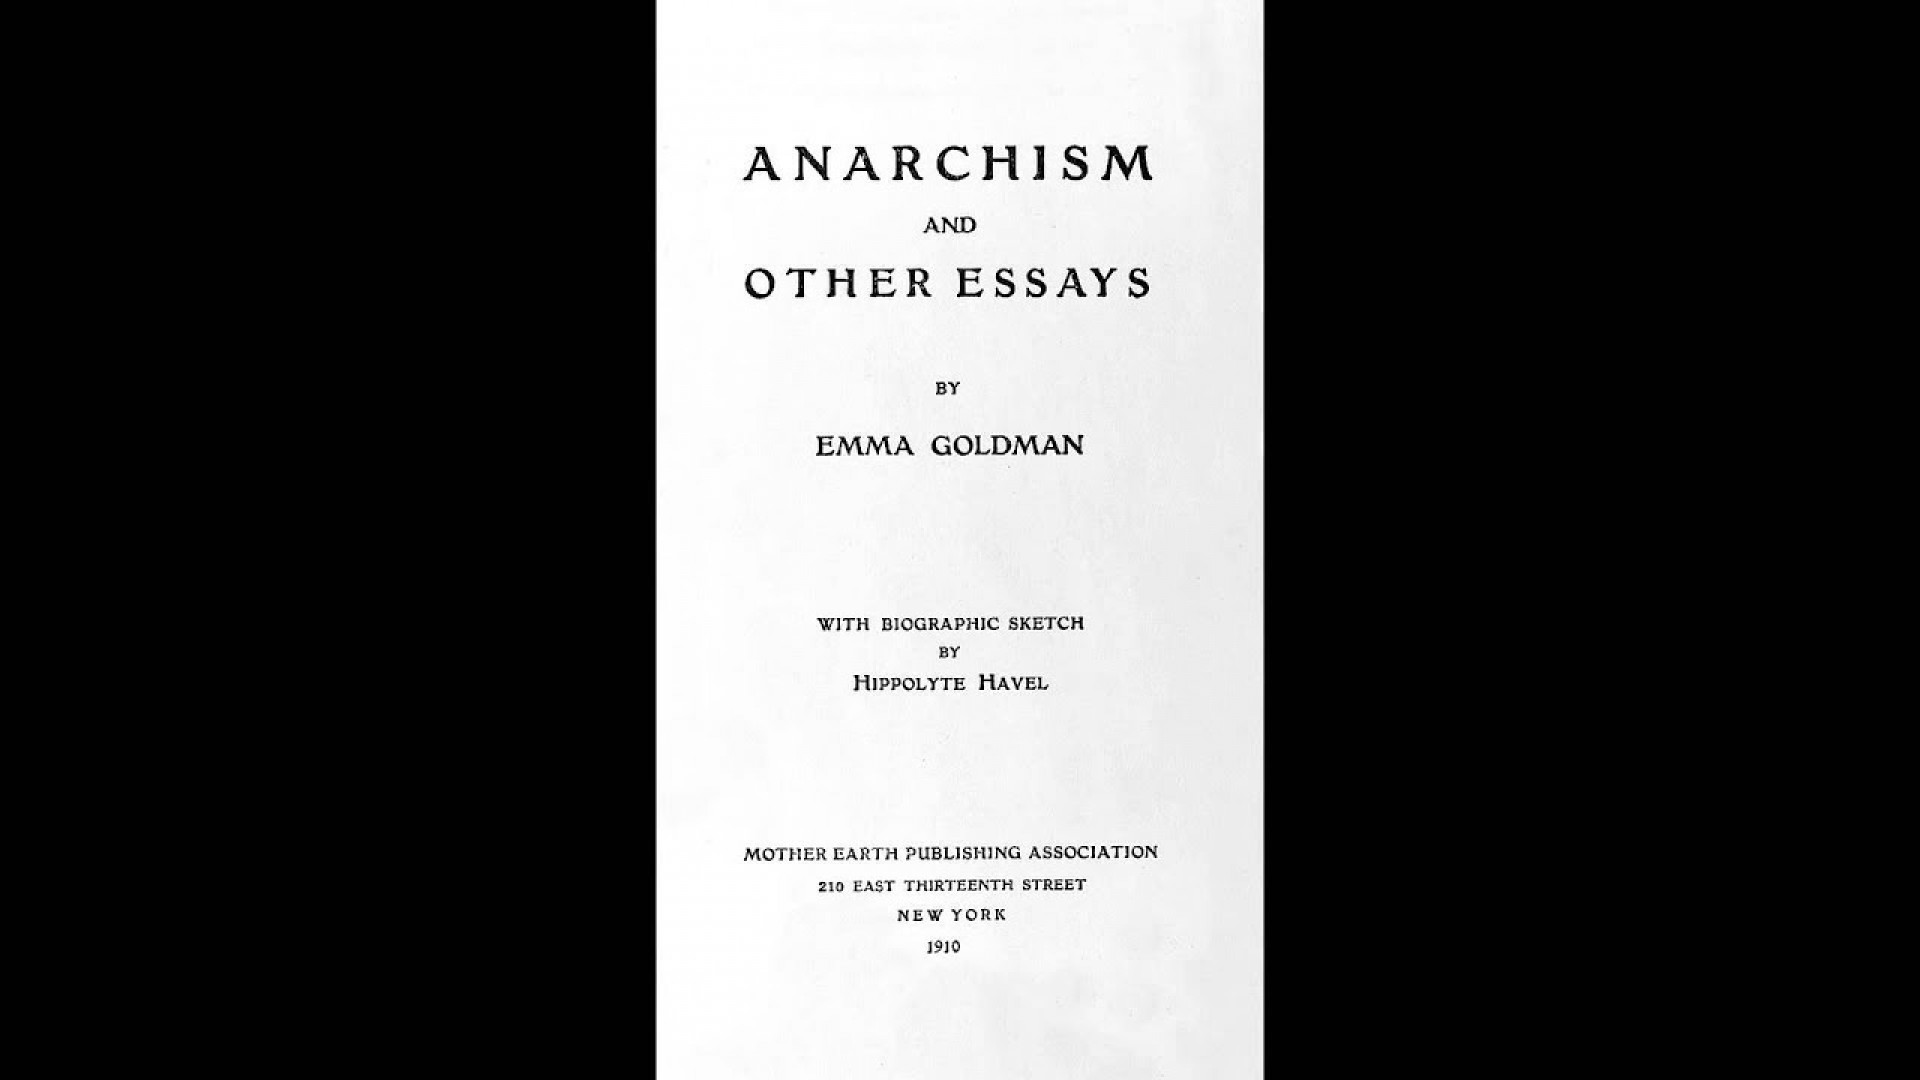 014 Essay Example Anarchism And Other Essays Incredible Emma Goldman Summary Mla Citation 1920